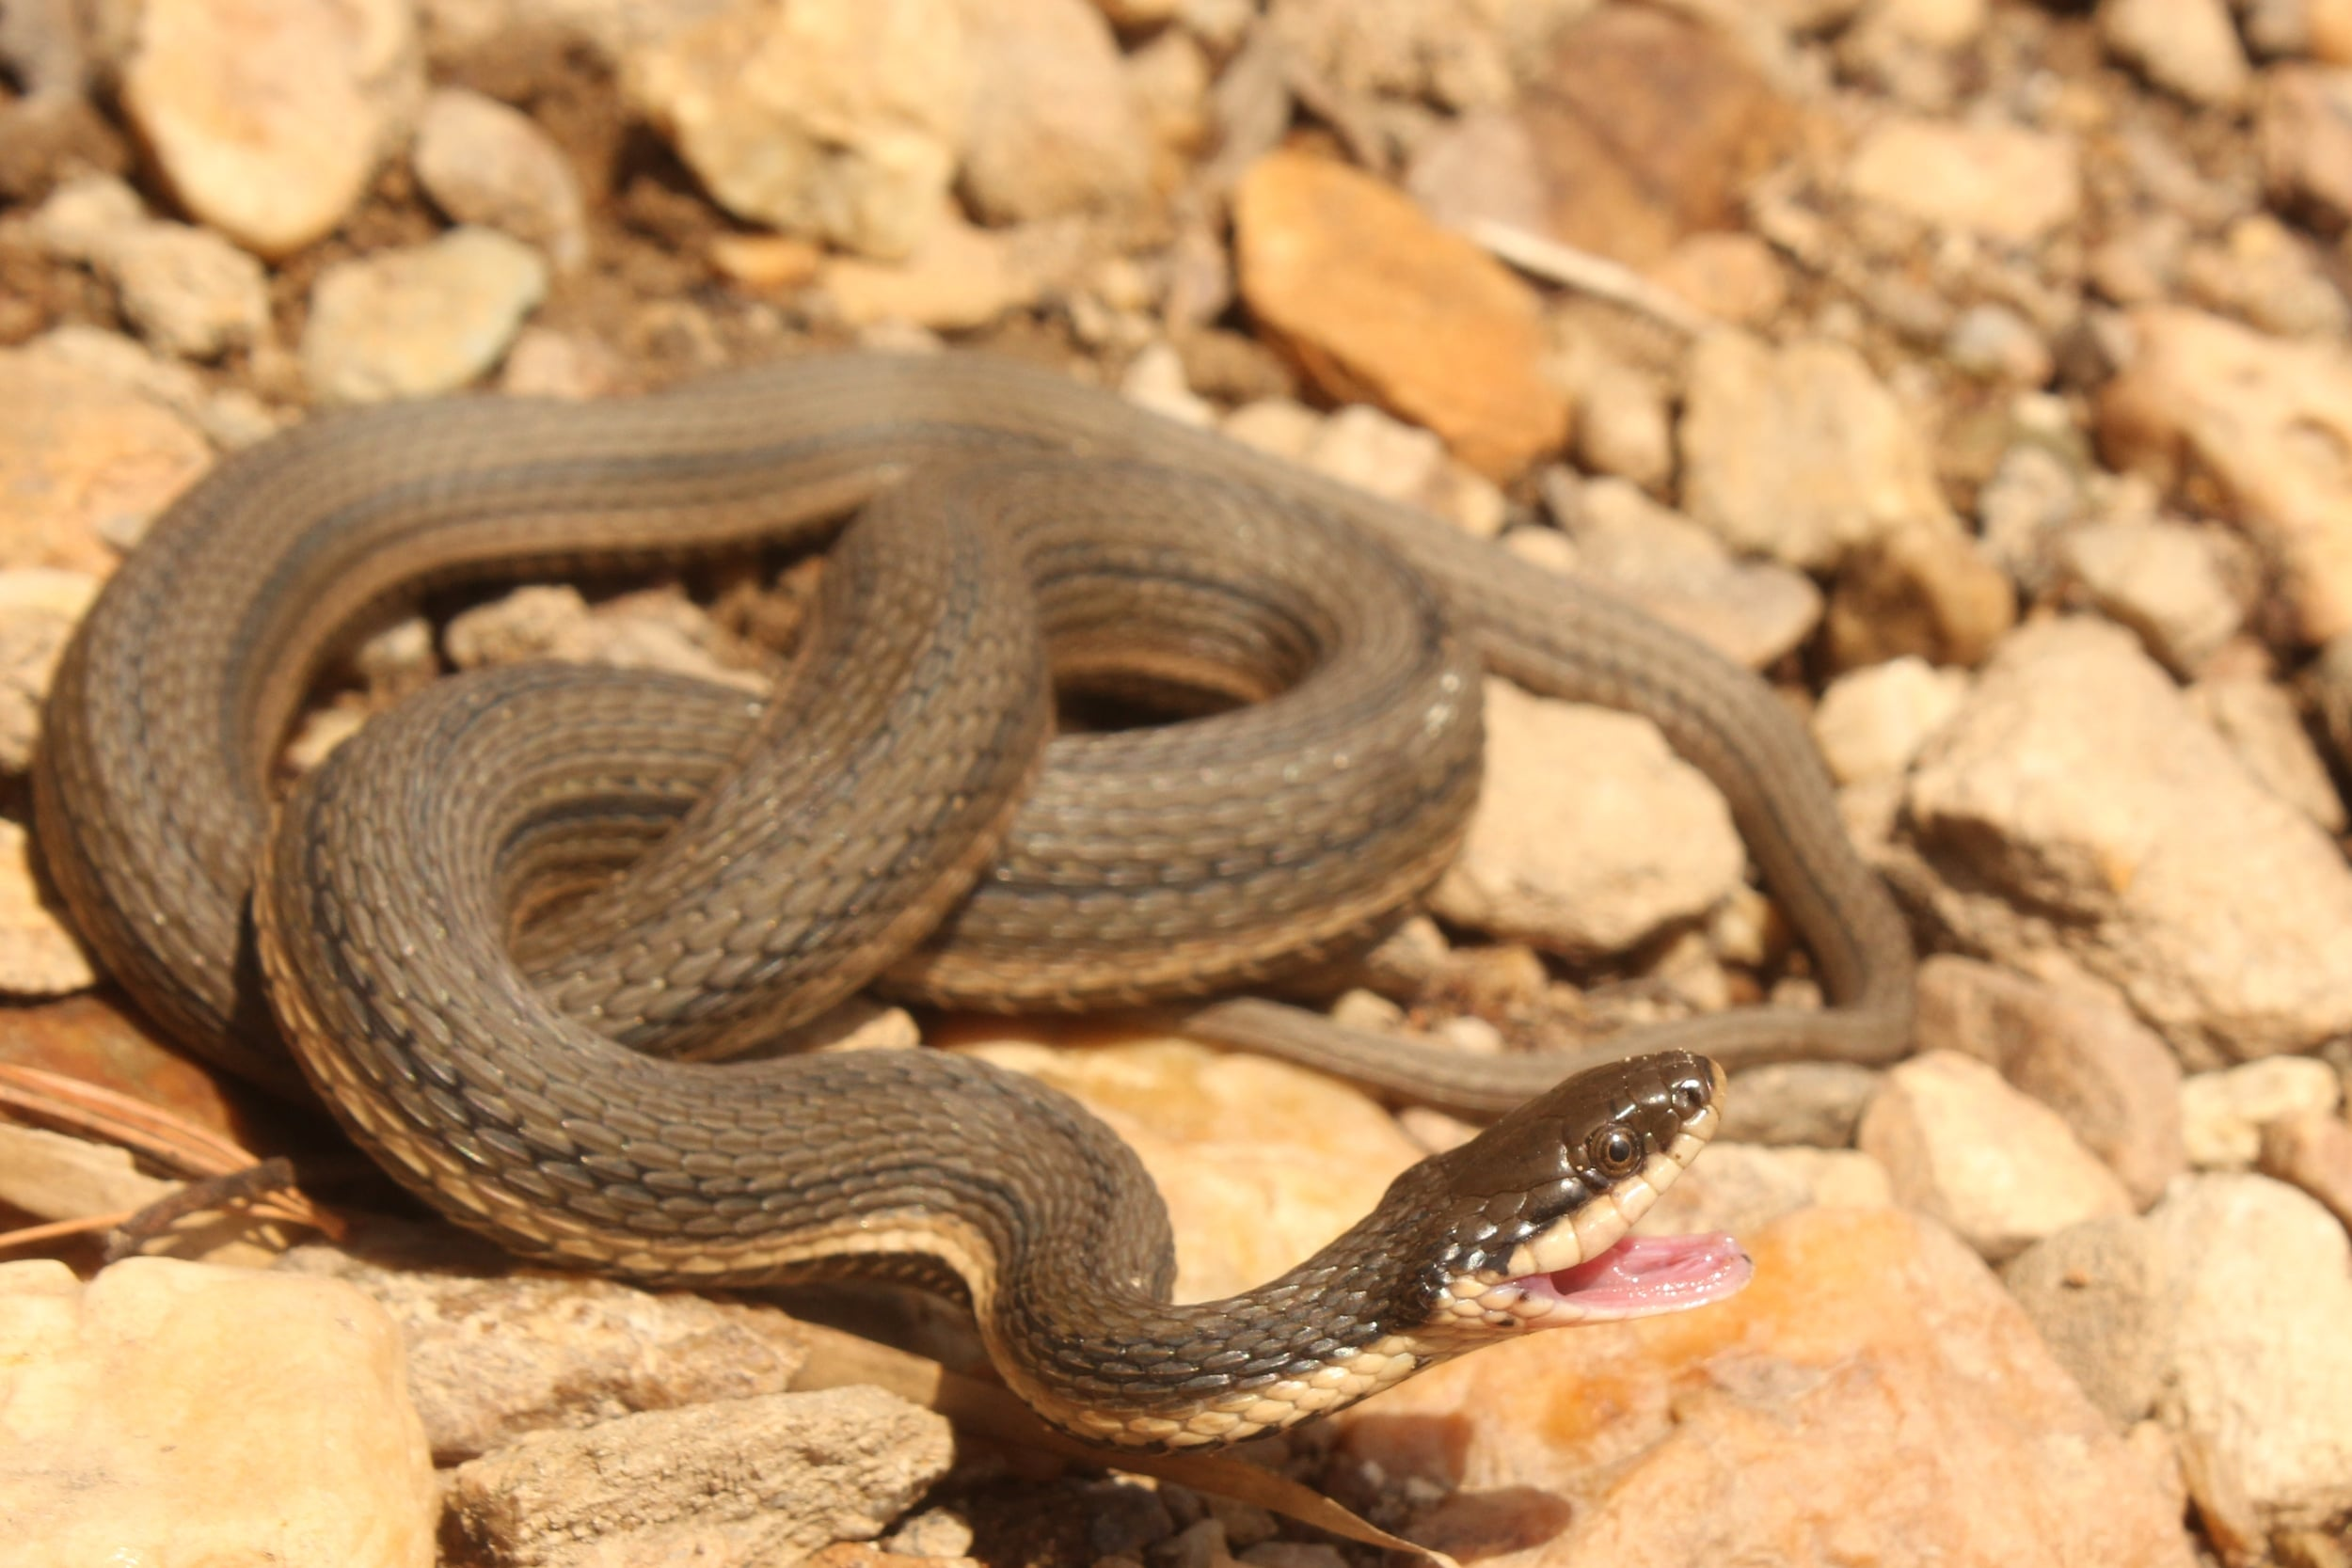 Queensnake - This queen from York County was a bit feisty but settled down quickly.